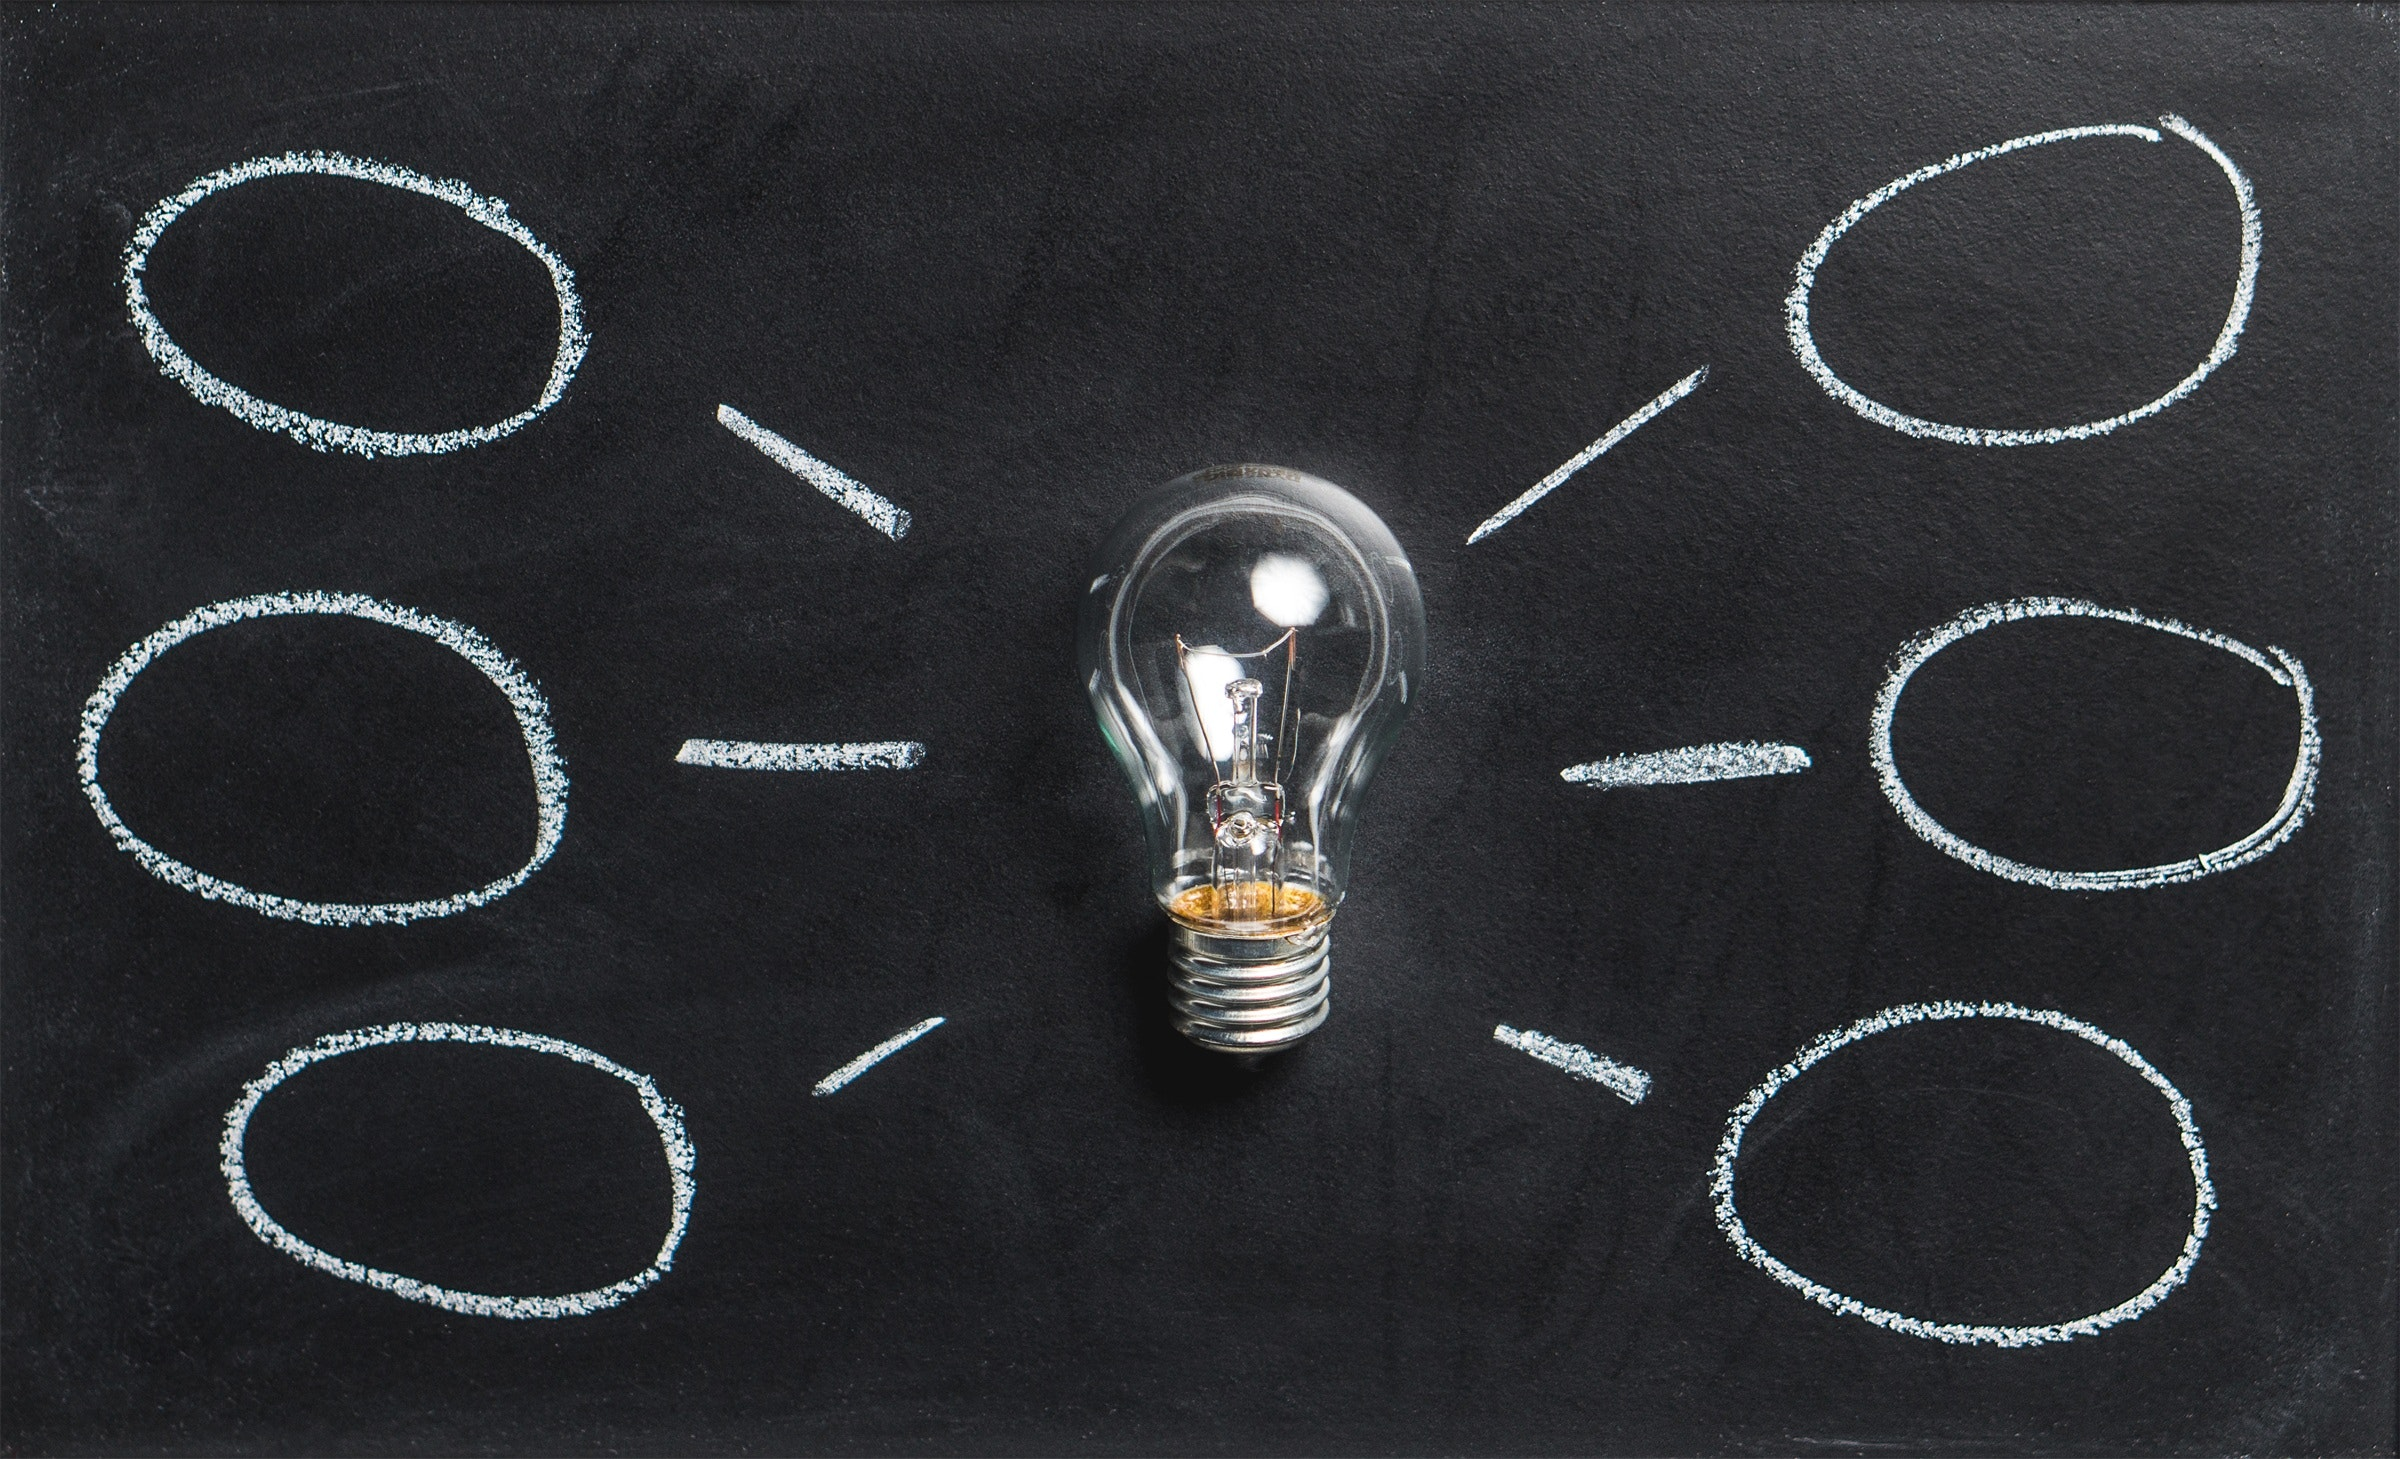 A clear light bulb on a blackboard surrounded by thought bubbles drawn in chalk.